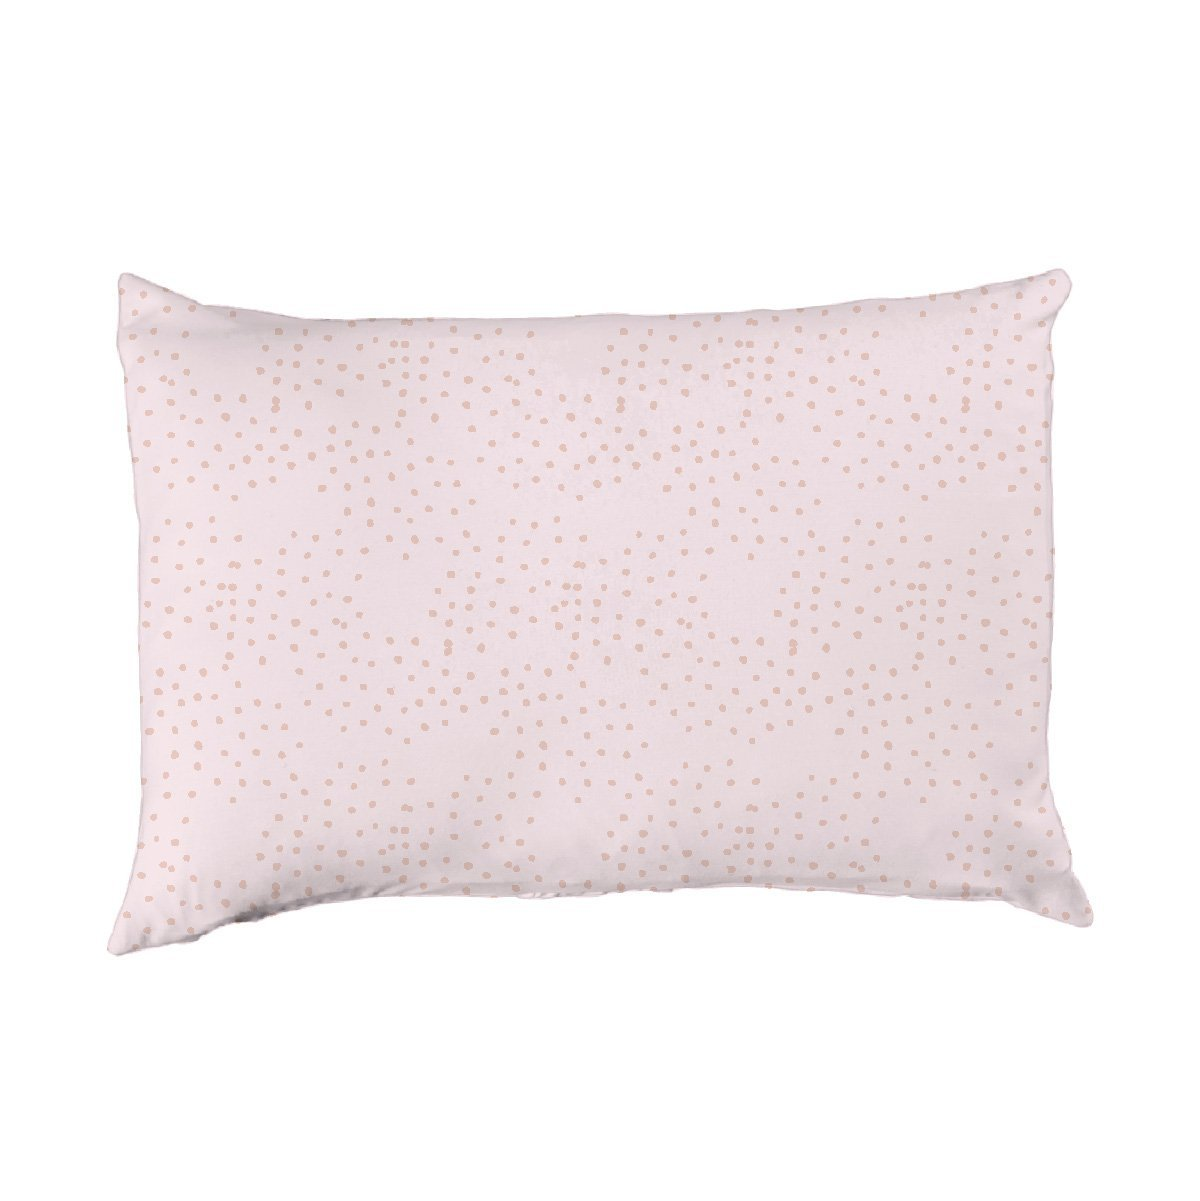 Amelia's Lovely Lily | Mommy Pillow Case